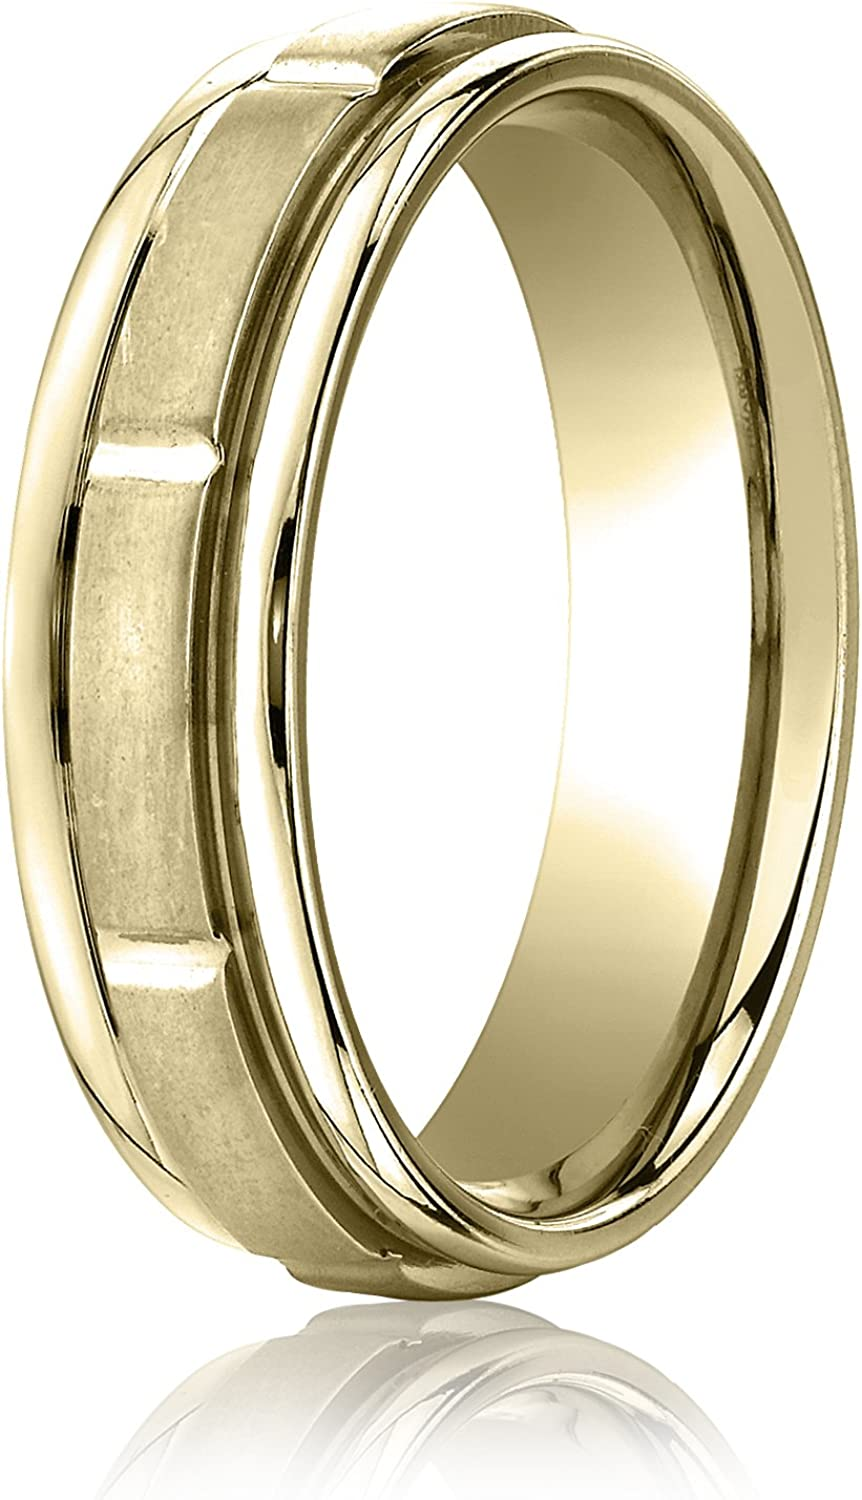 Women's 18K Yellow Gold 6mm Comfort Satin Max mart 65% OFF Round Fit Cut Polished